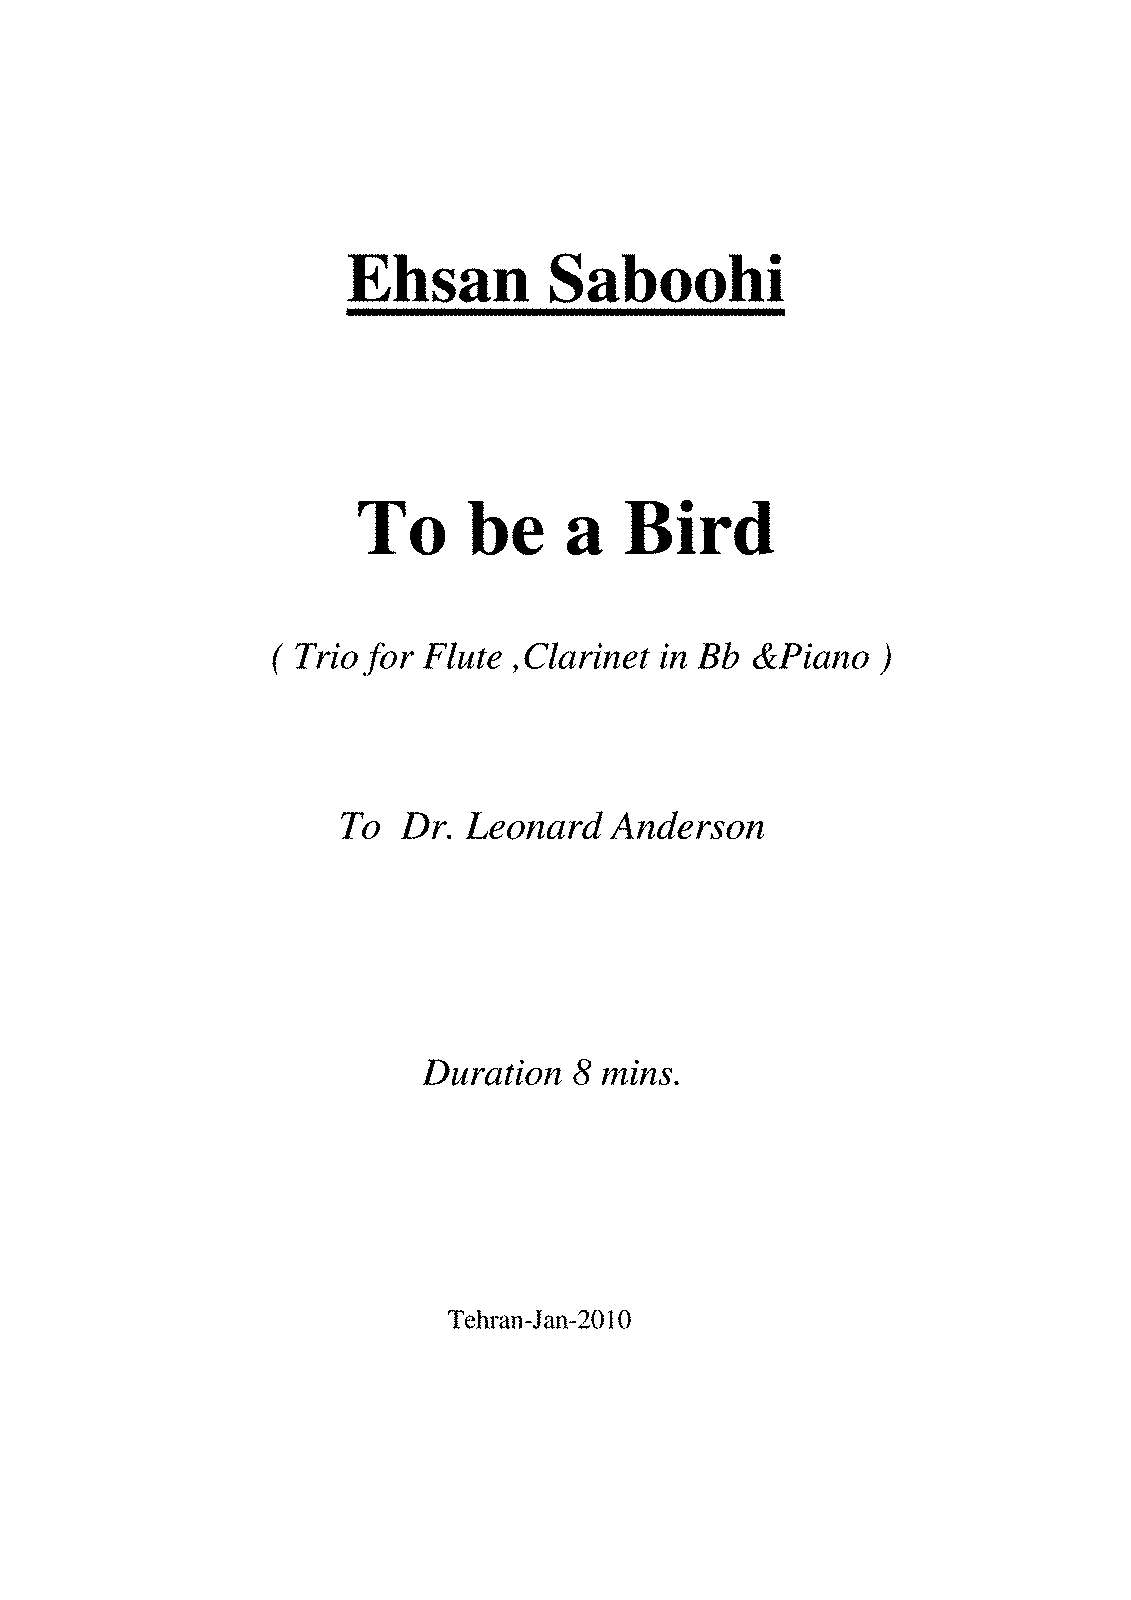 PMLP107722-To be a Bird.pdf